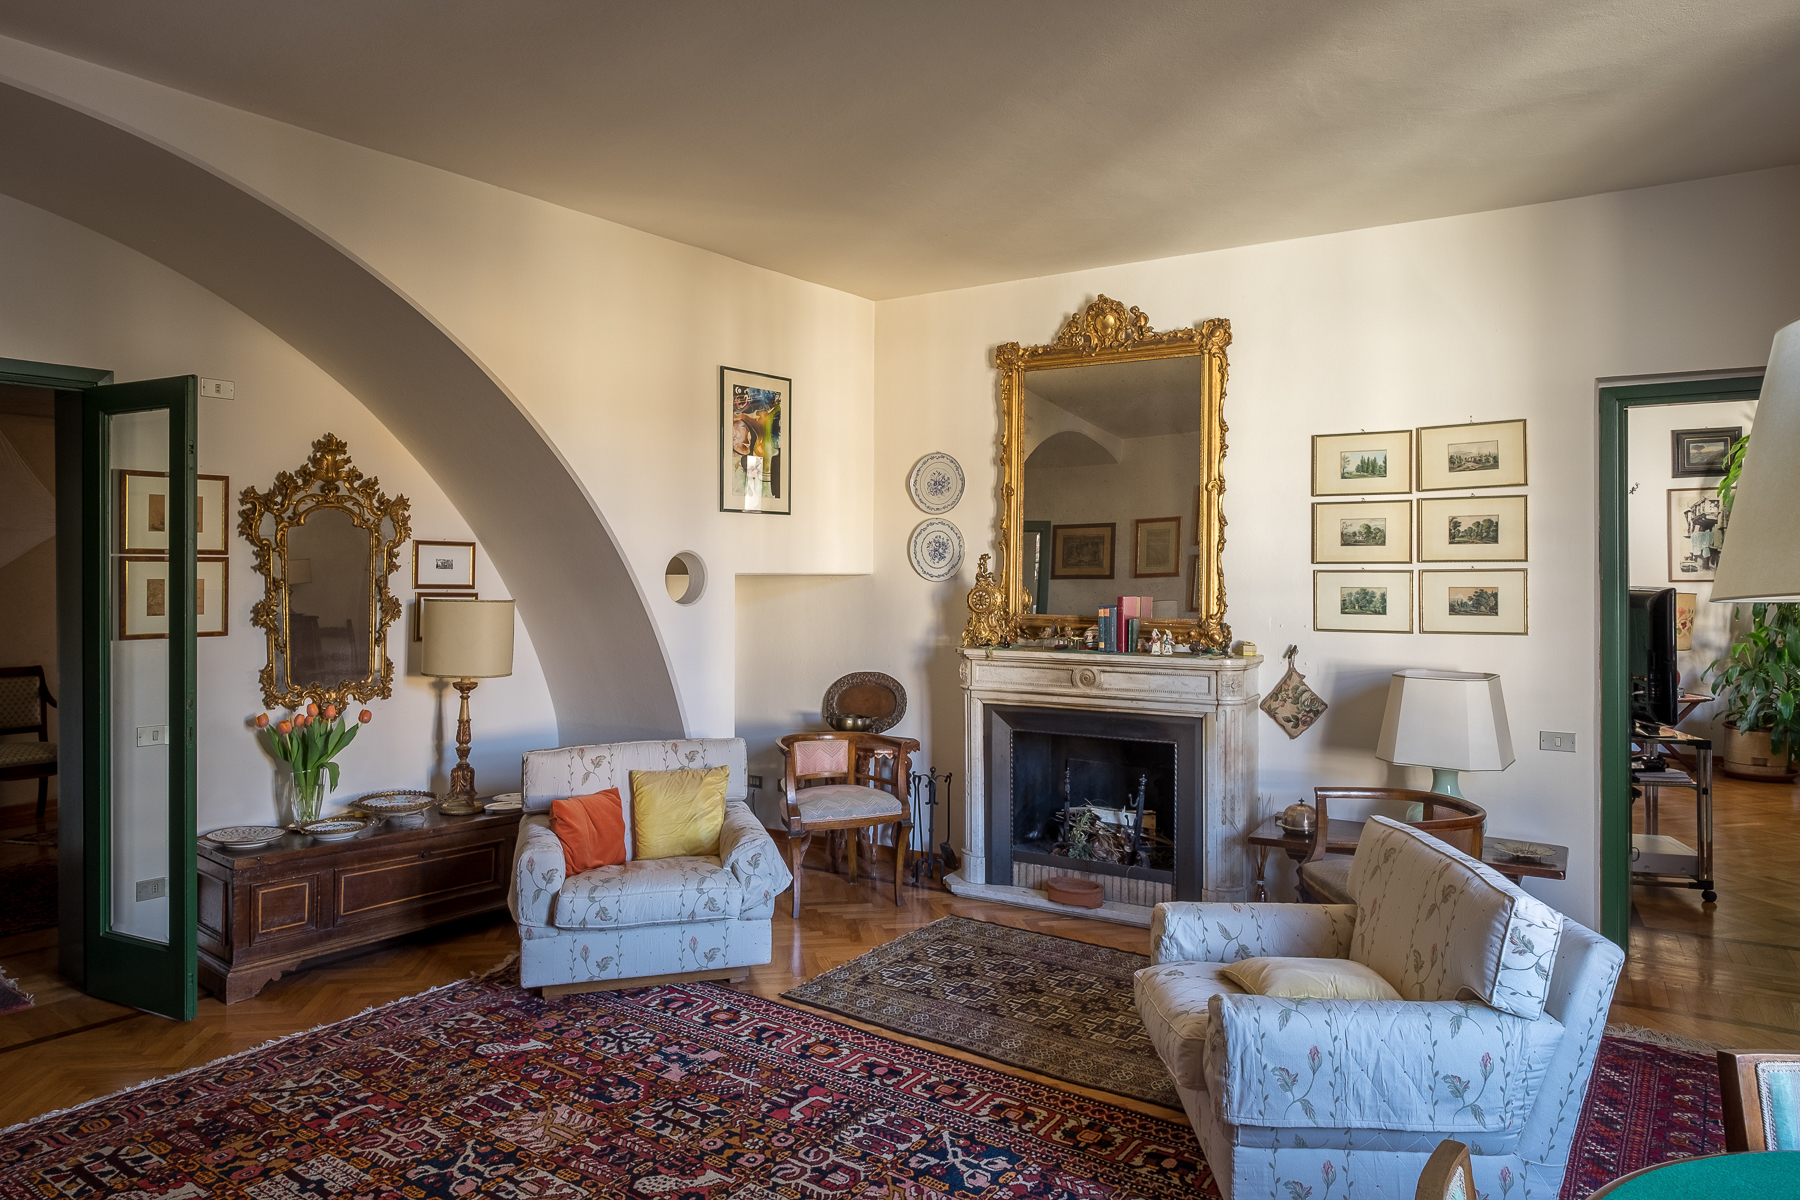 Additional photo for property listing at Exquisite penthouse in period building Borgo Santa Croce Firenze, Florence 50100 Italia